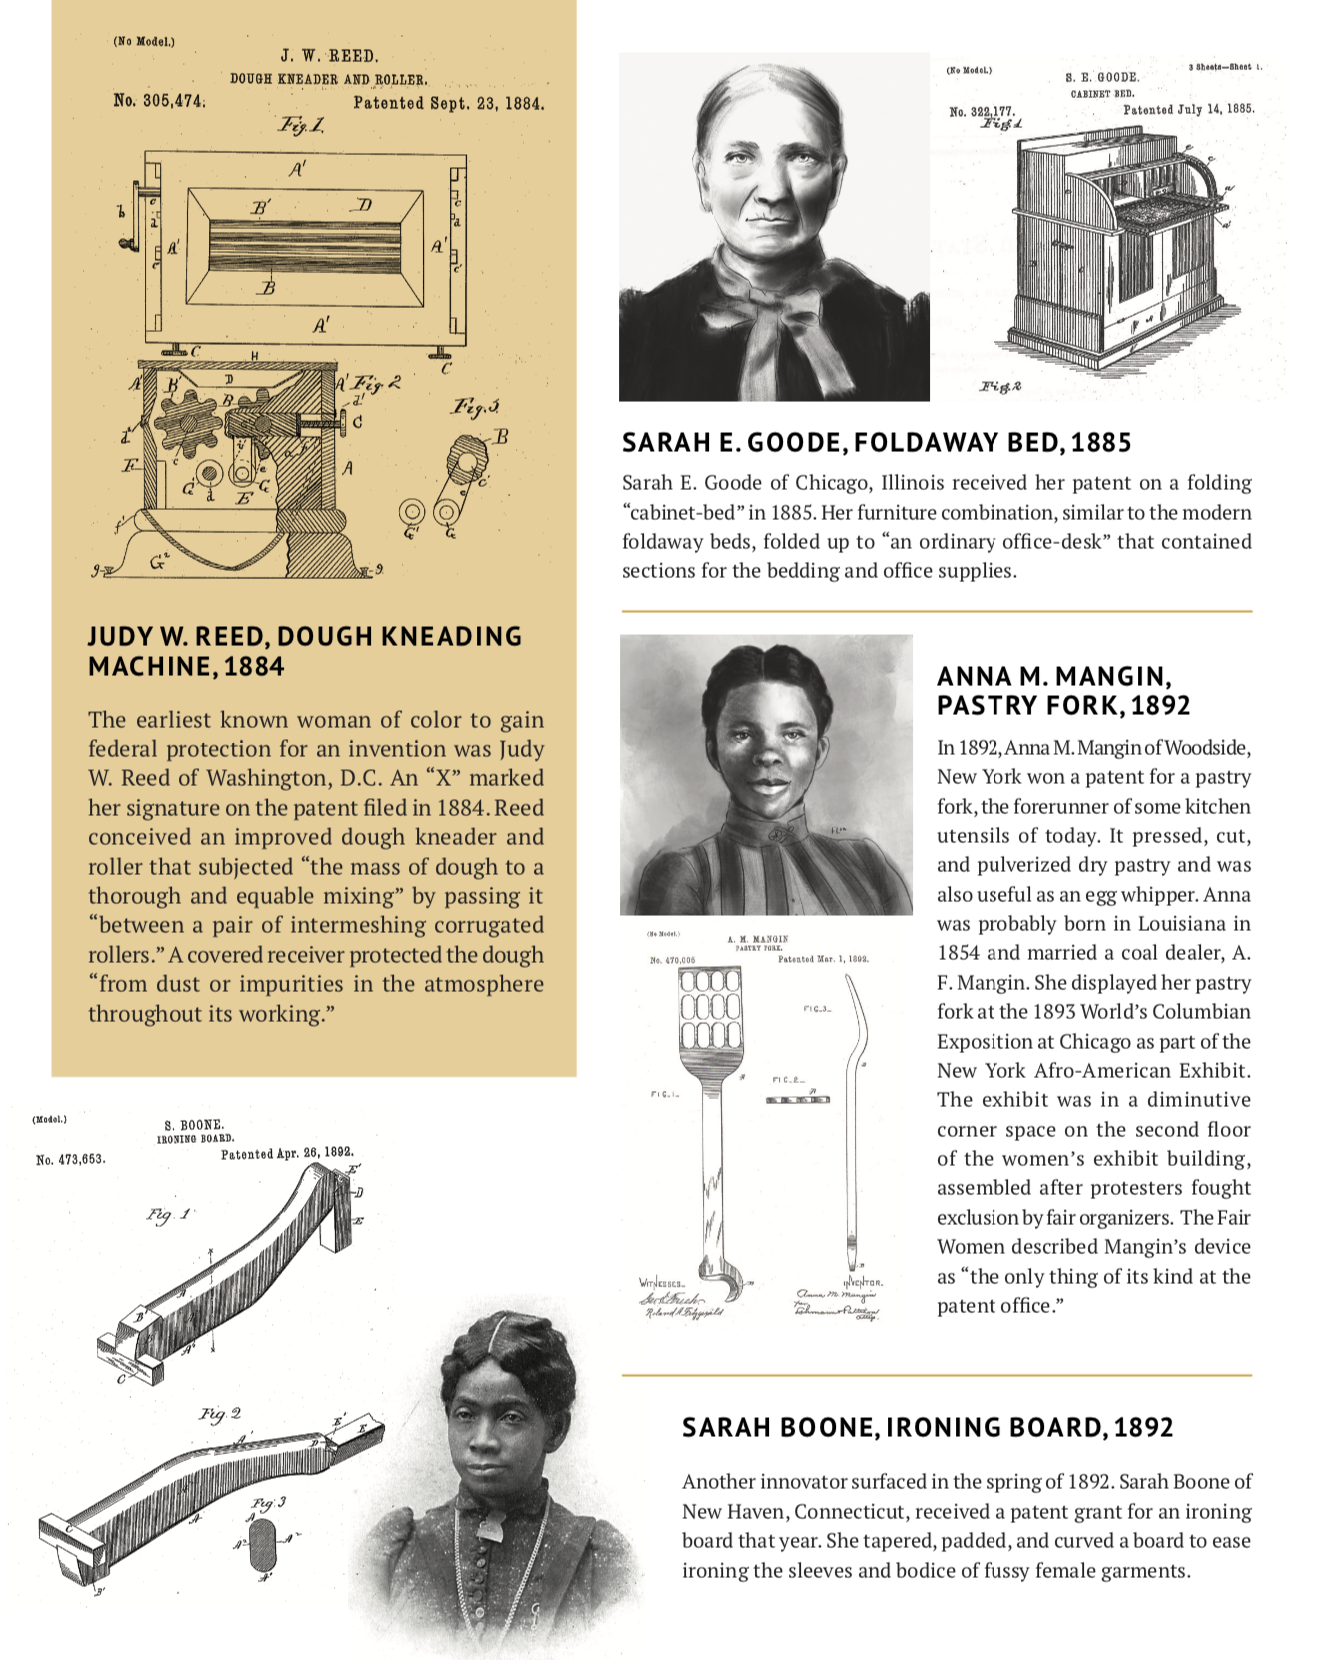 Illustrations of early women of color patent holders